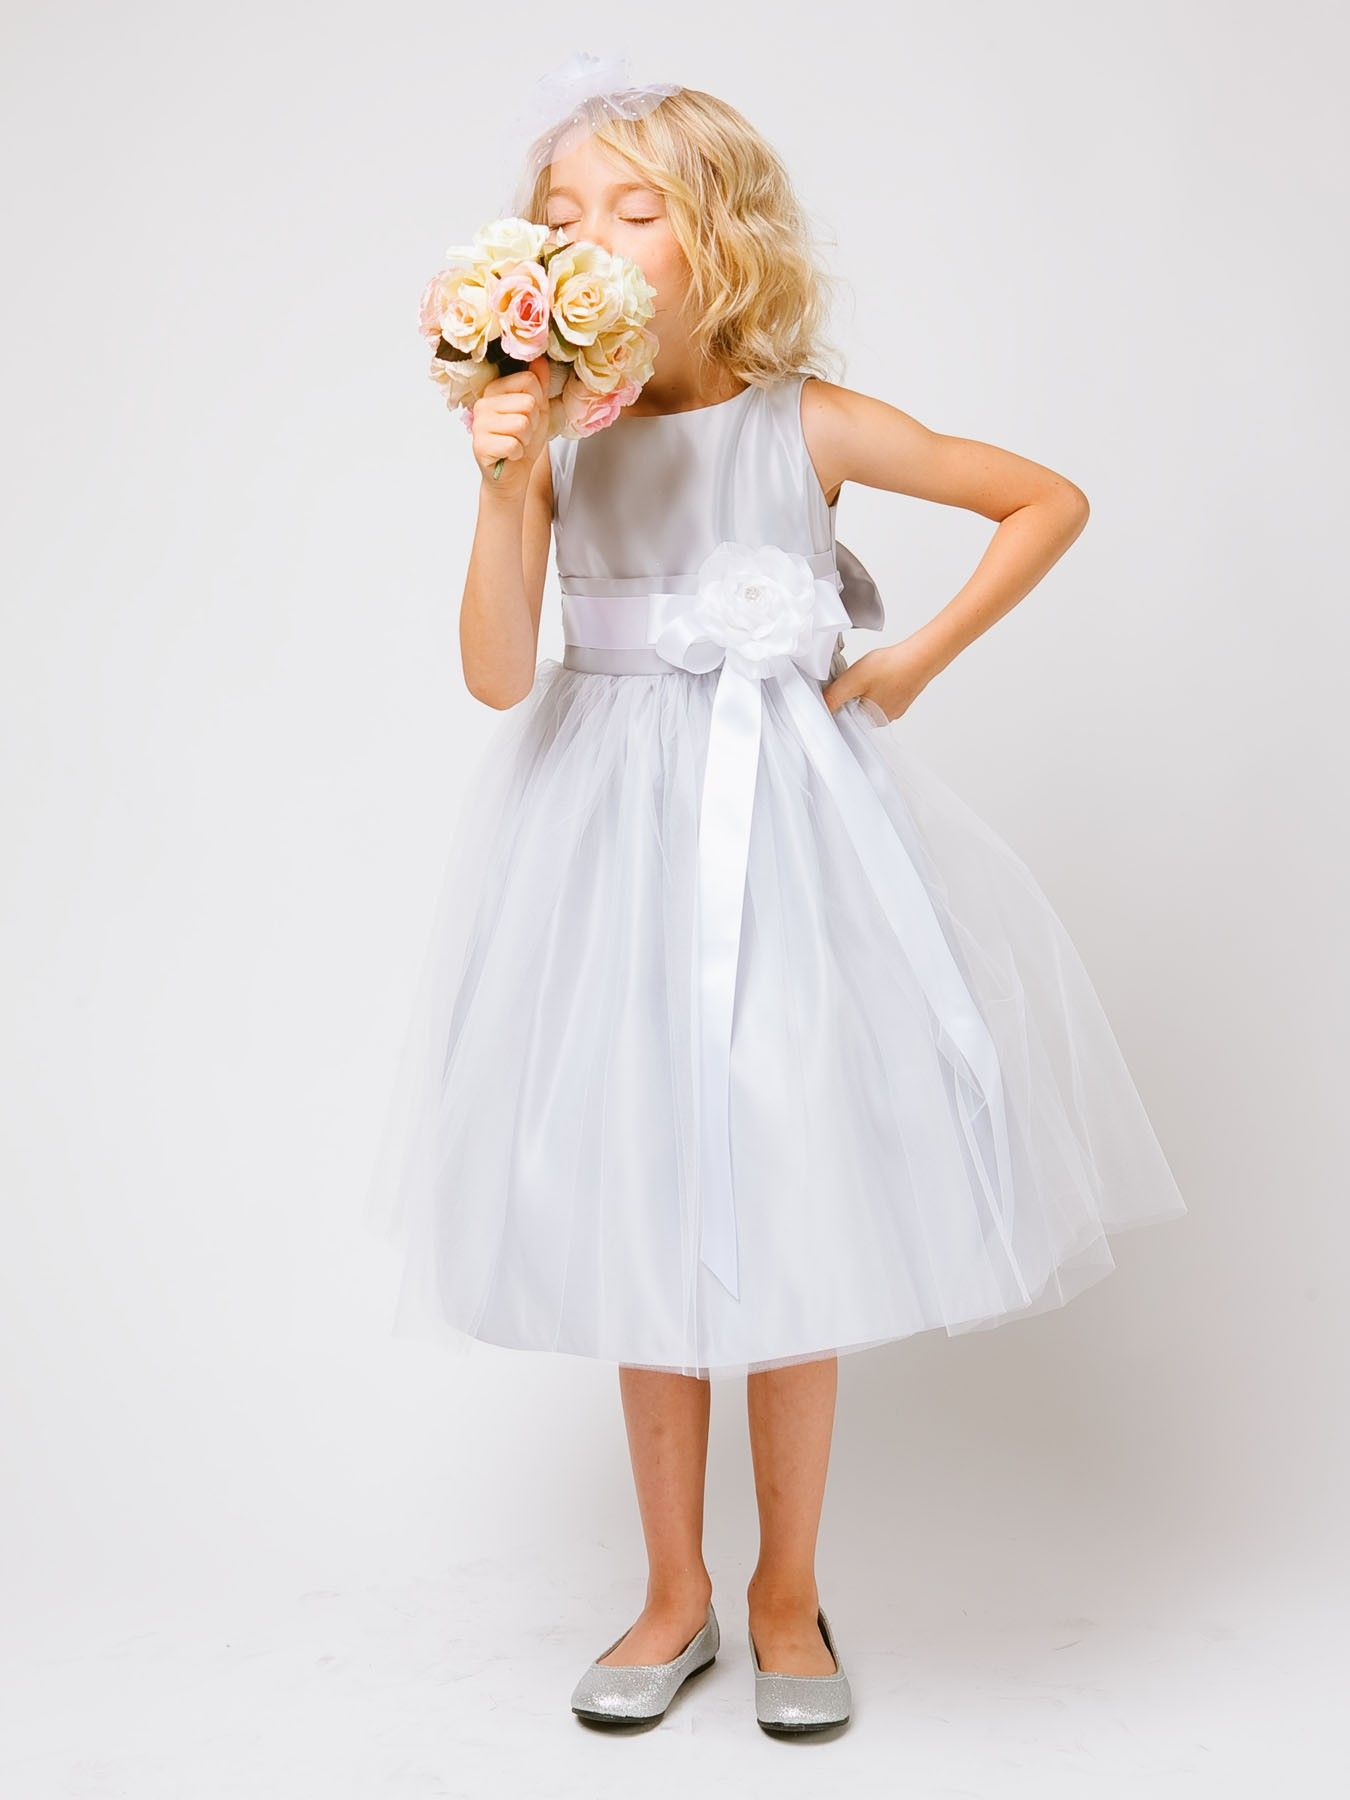 Silver Satin And Tulle Flower Girl Dress In Sizes Infants 12 In 11